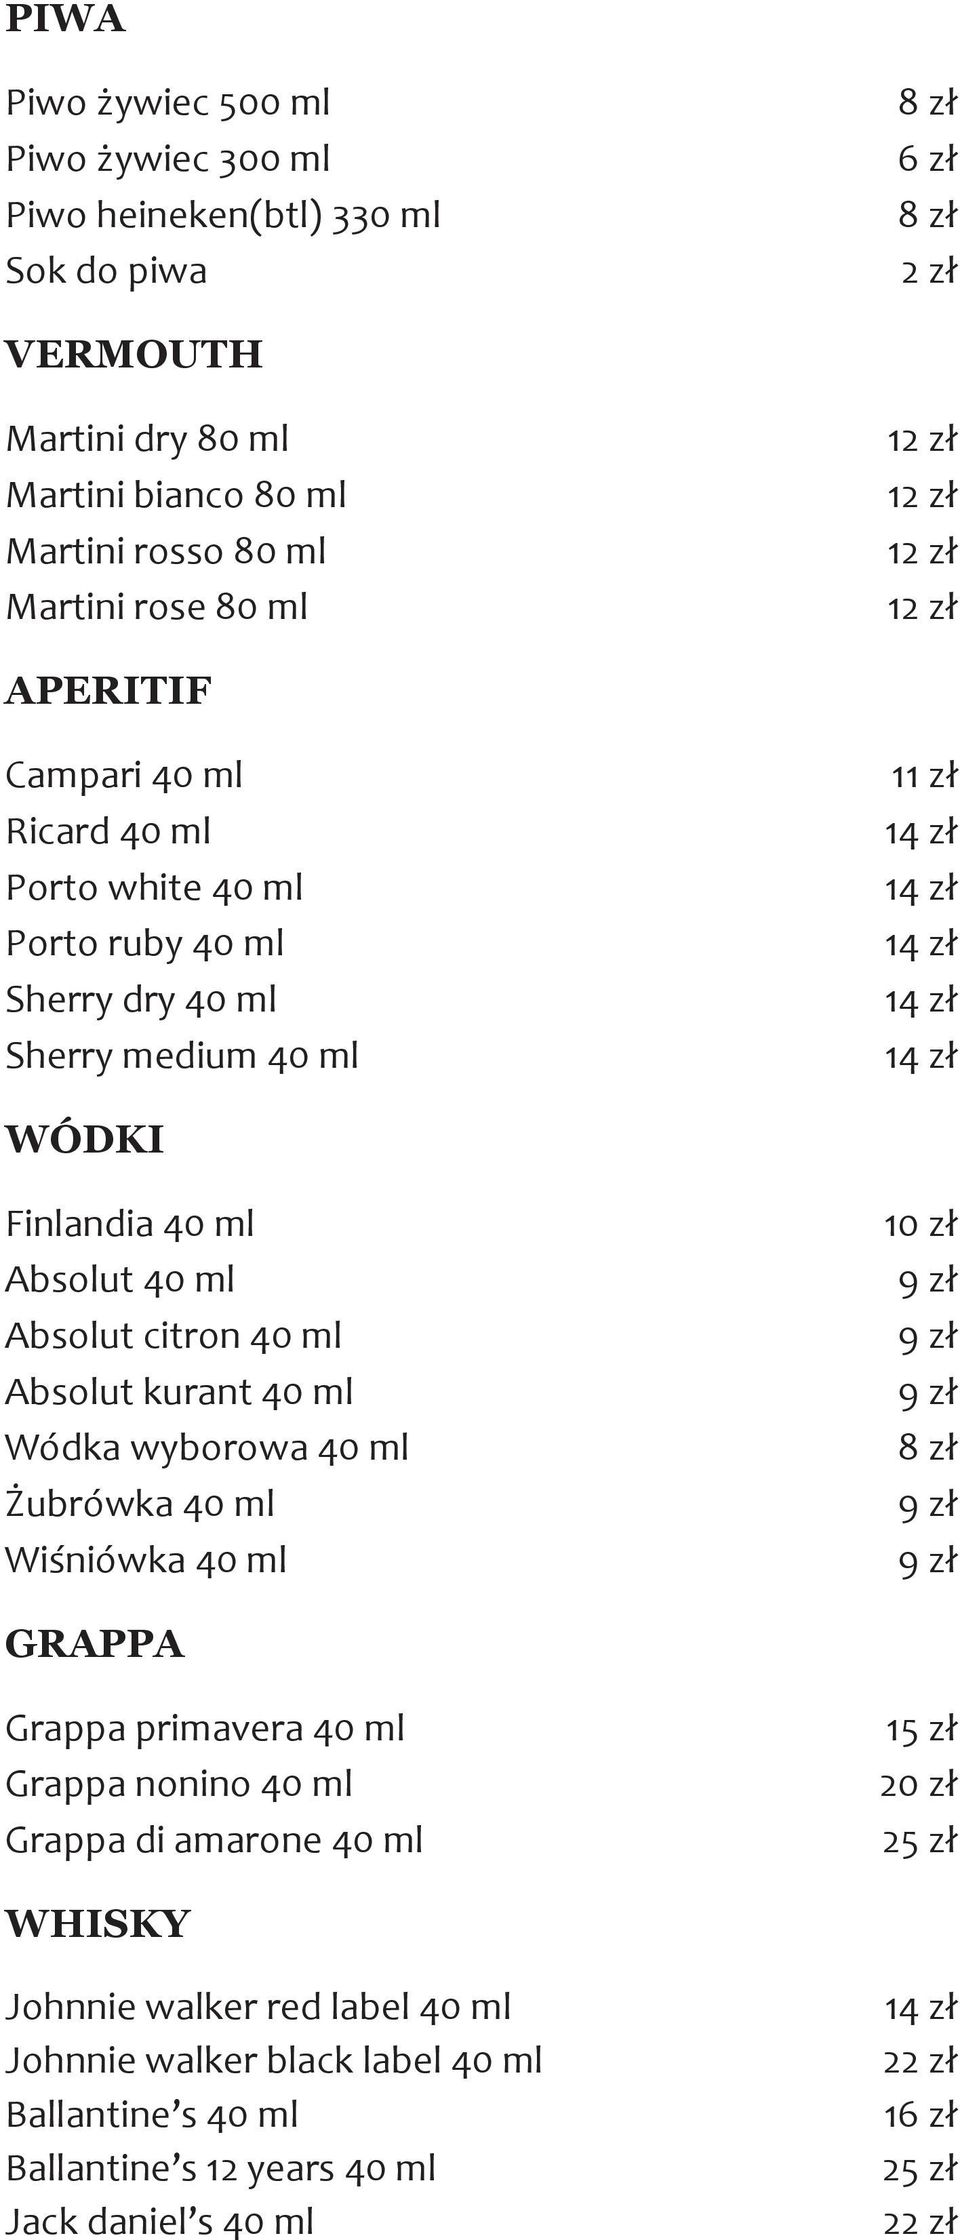 citron 40 ml Absolut kurant 40 ml Wódka wyborowa 40 ml Żubrówka 40 ml Wiśniówka 40 ml 10 zł GRAPPA Grappa primavera 40 ml Grappa nonino 40 ml Grappa di amarone 40 ml 15